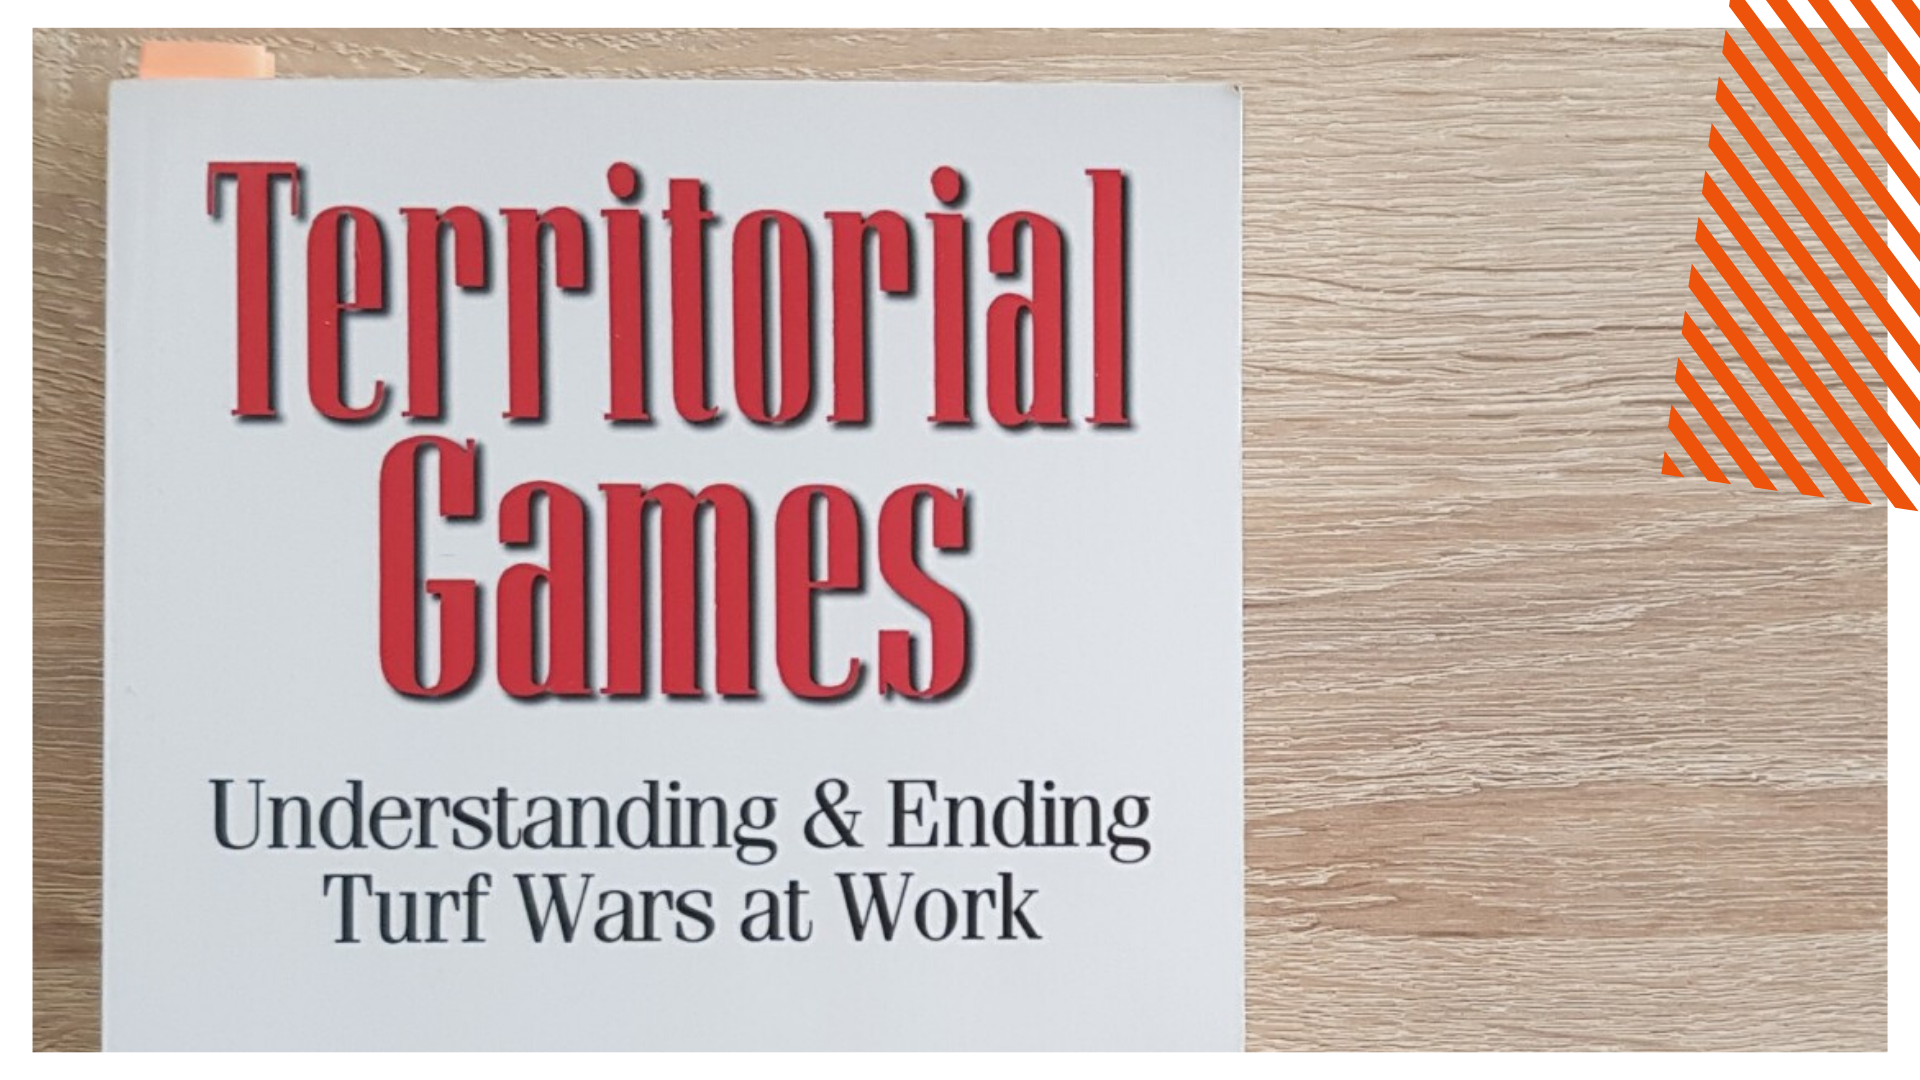 #2 Annette Simmons – Territorial Games